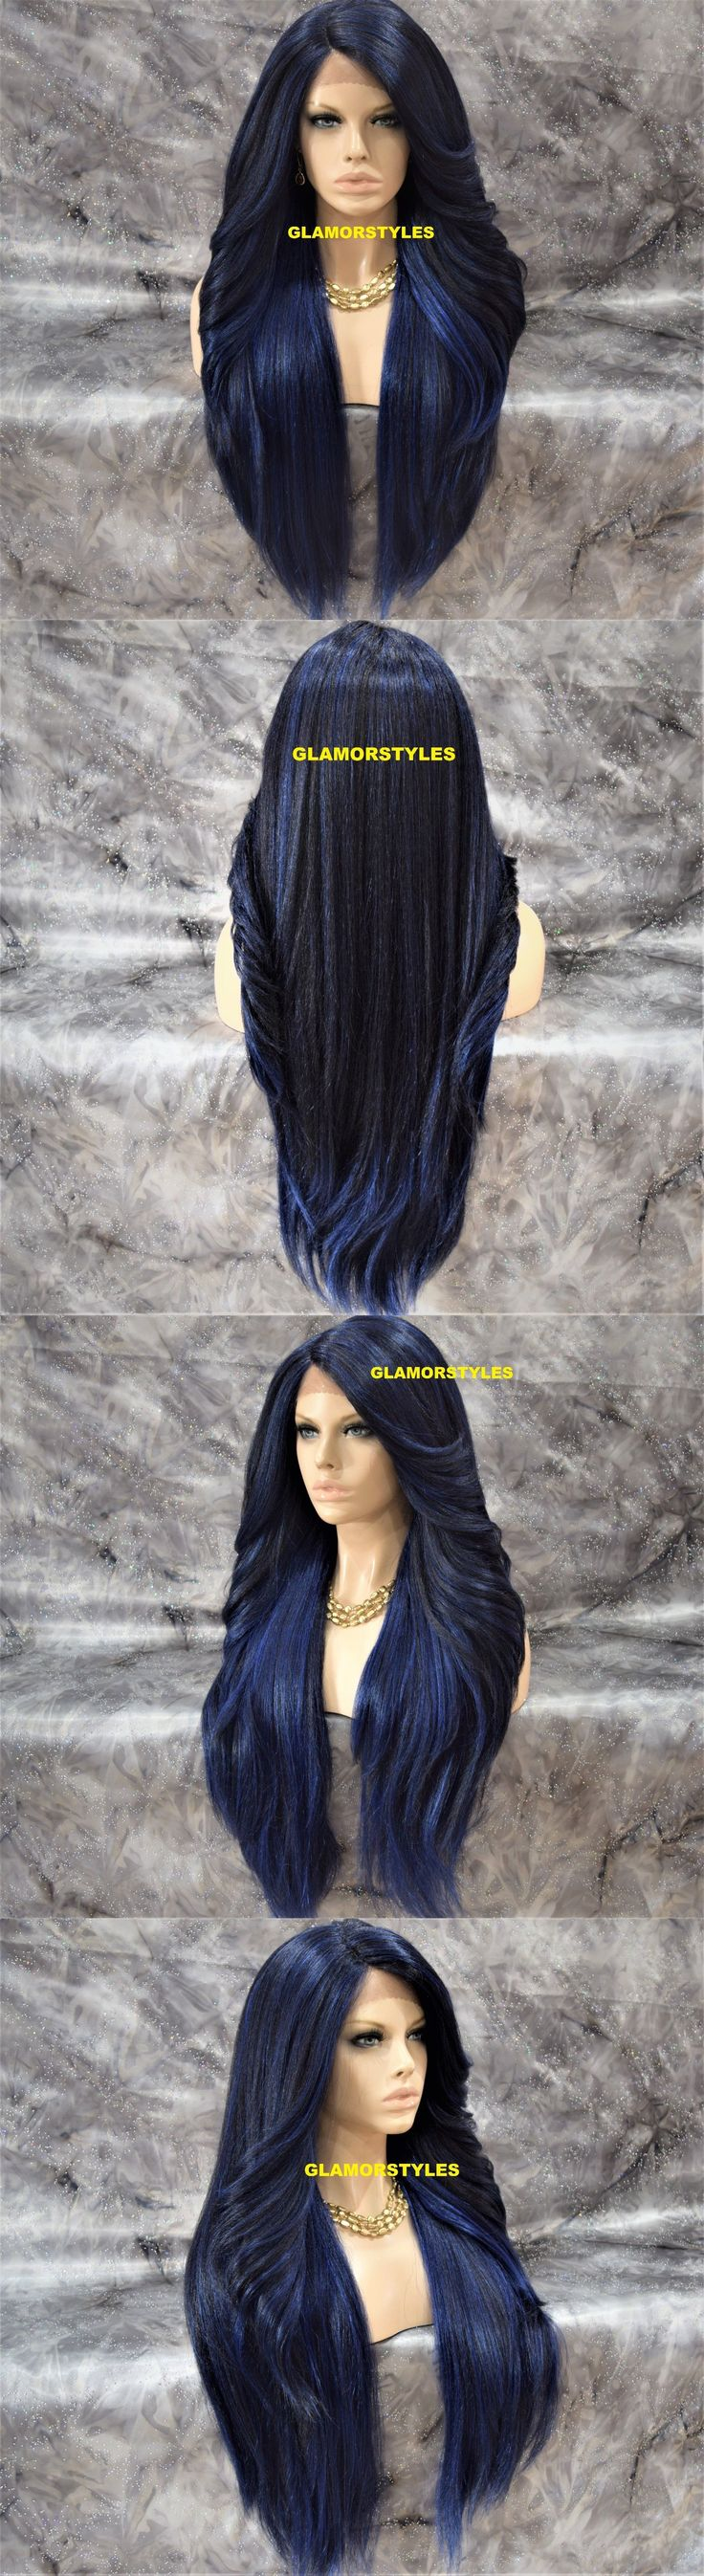 Wigs and Hairpieces: 38 Long Straight Layered Black Blue Mix Full Lace Front Wig Heat Ok Hair Piece -> BUY IT NOW ONLY: $47.36 on eBay!